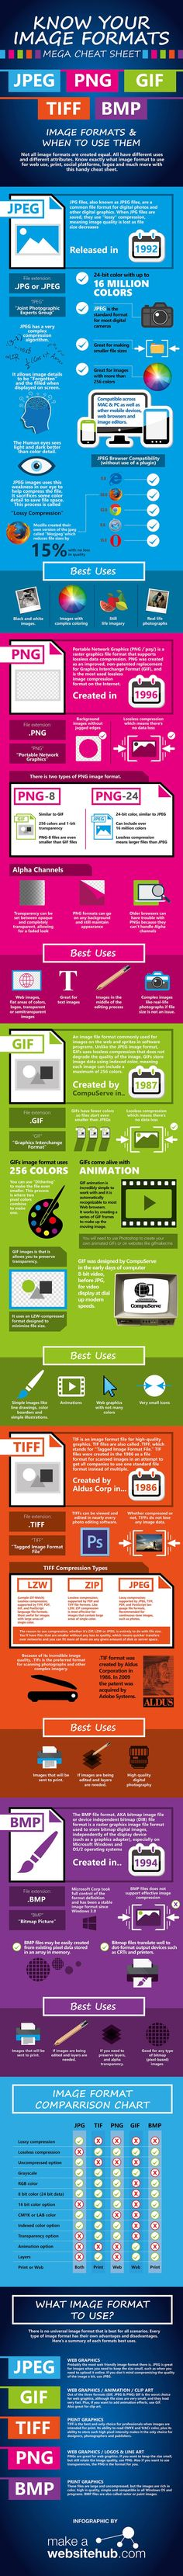 Know your image formats...